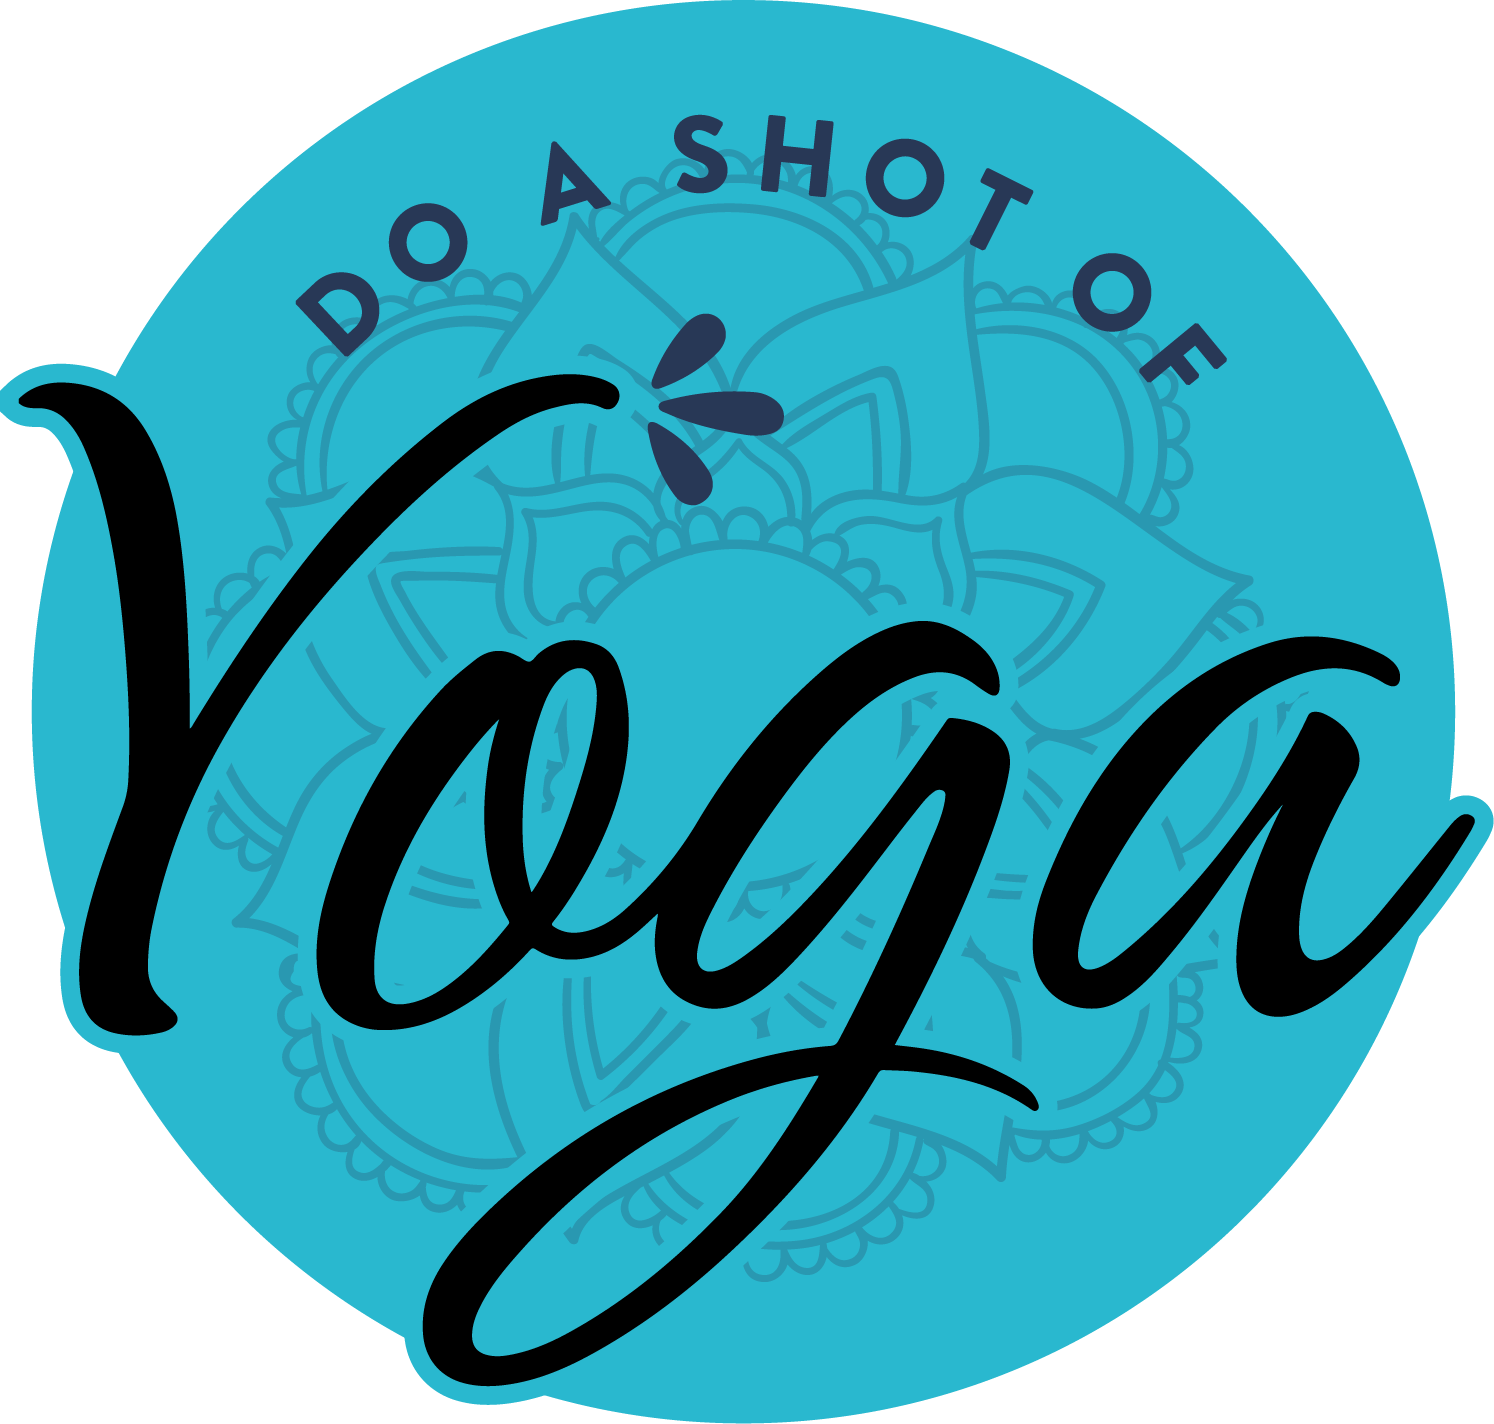 Do A Shot Of Yoga